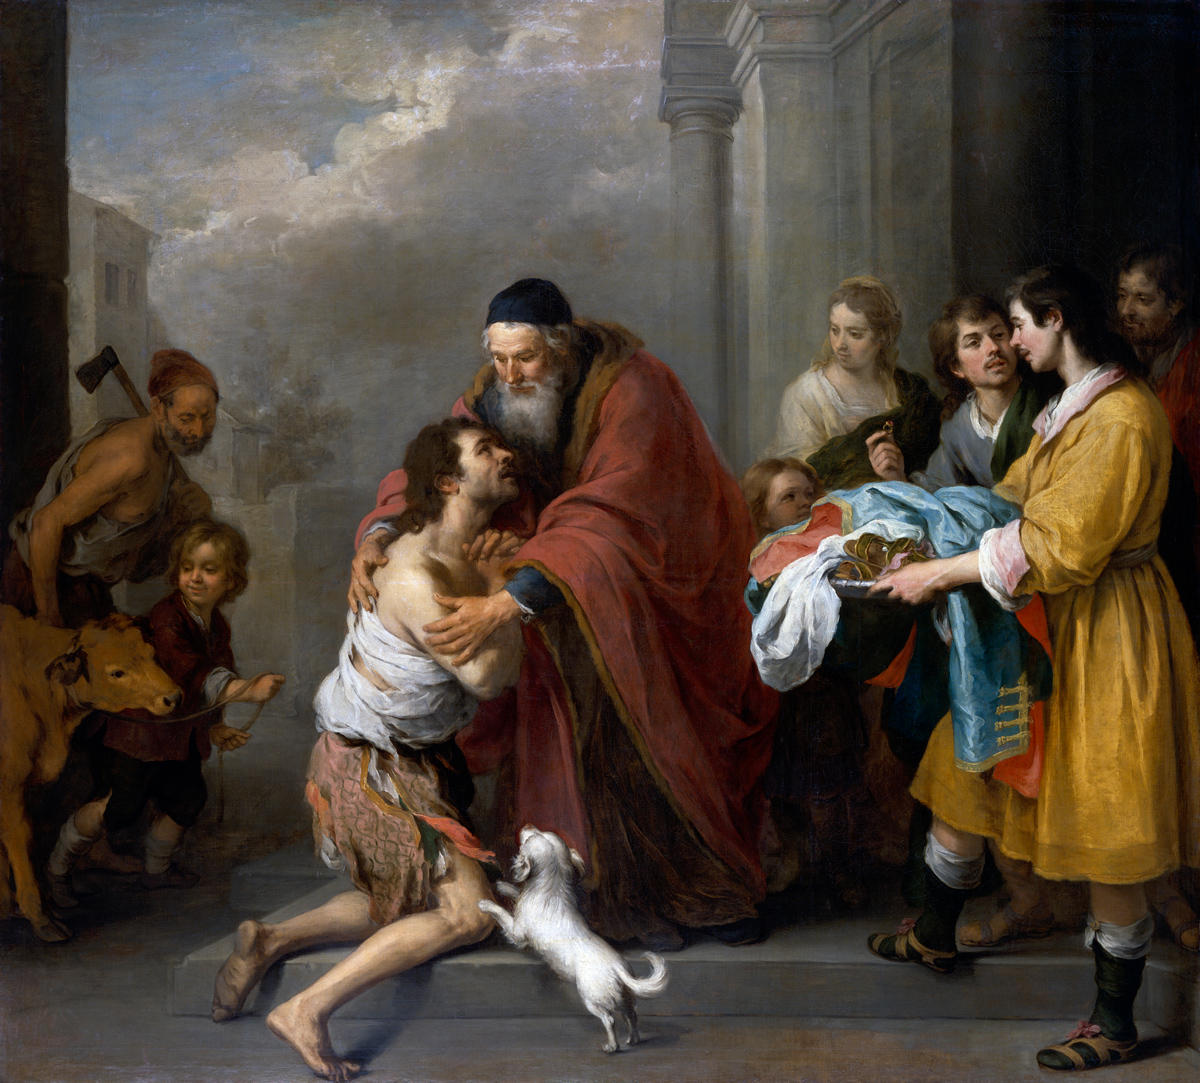 Painting of the Return of the Prodigal Son